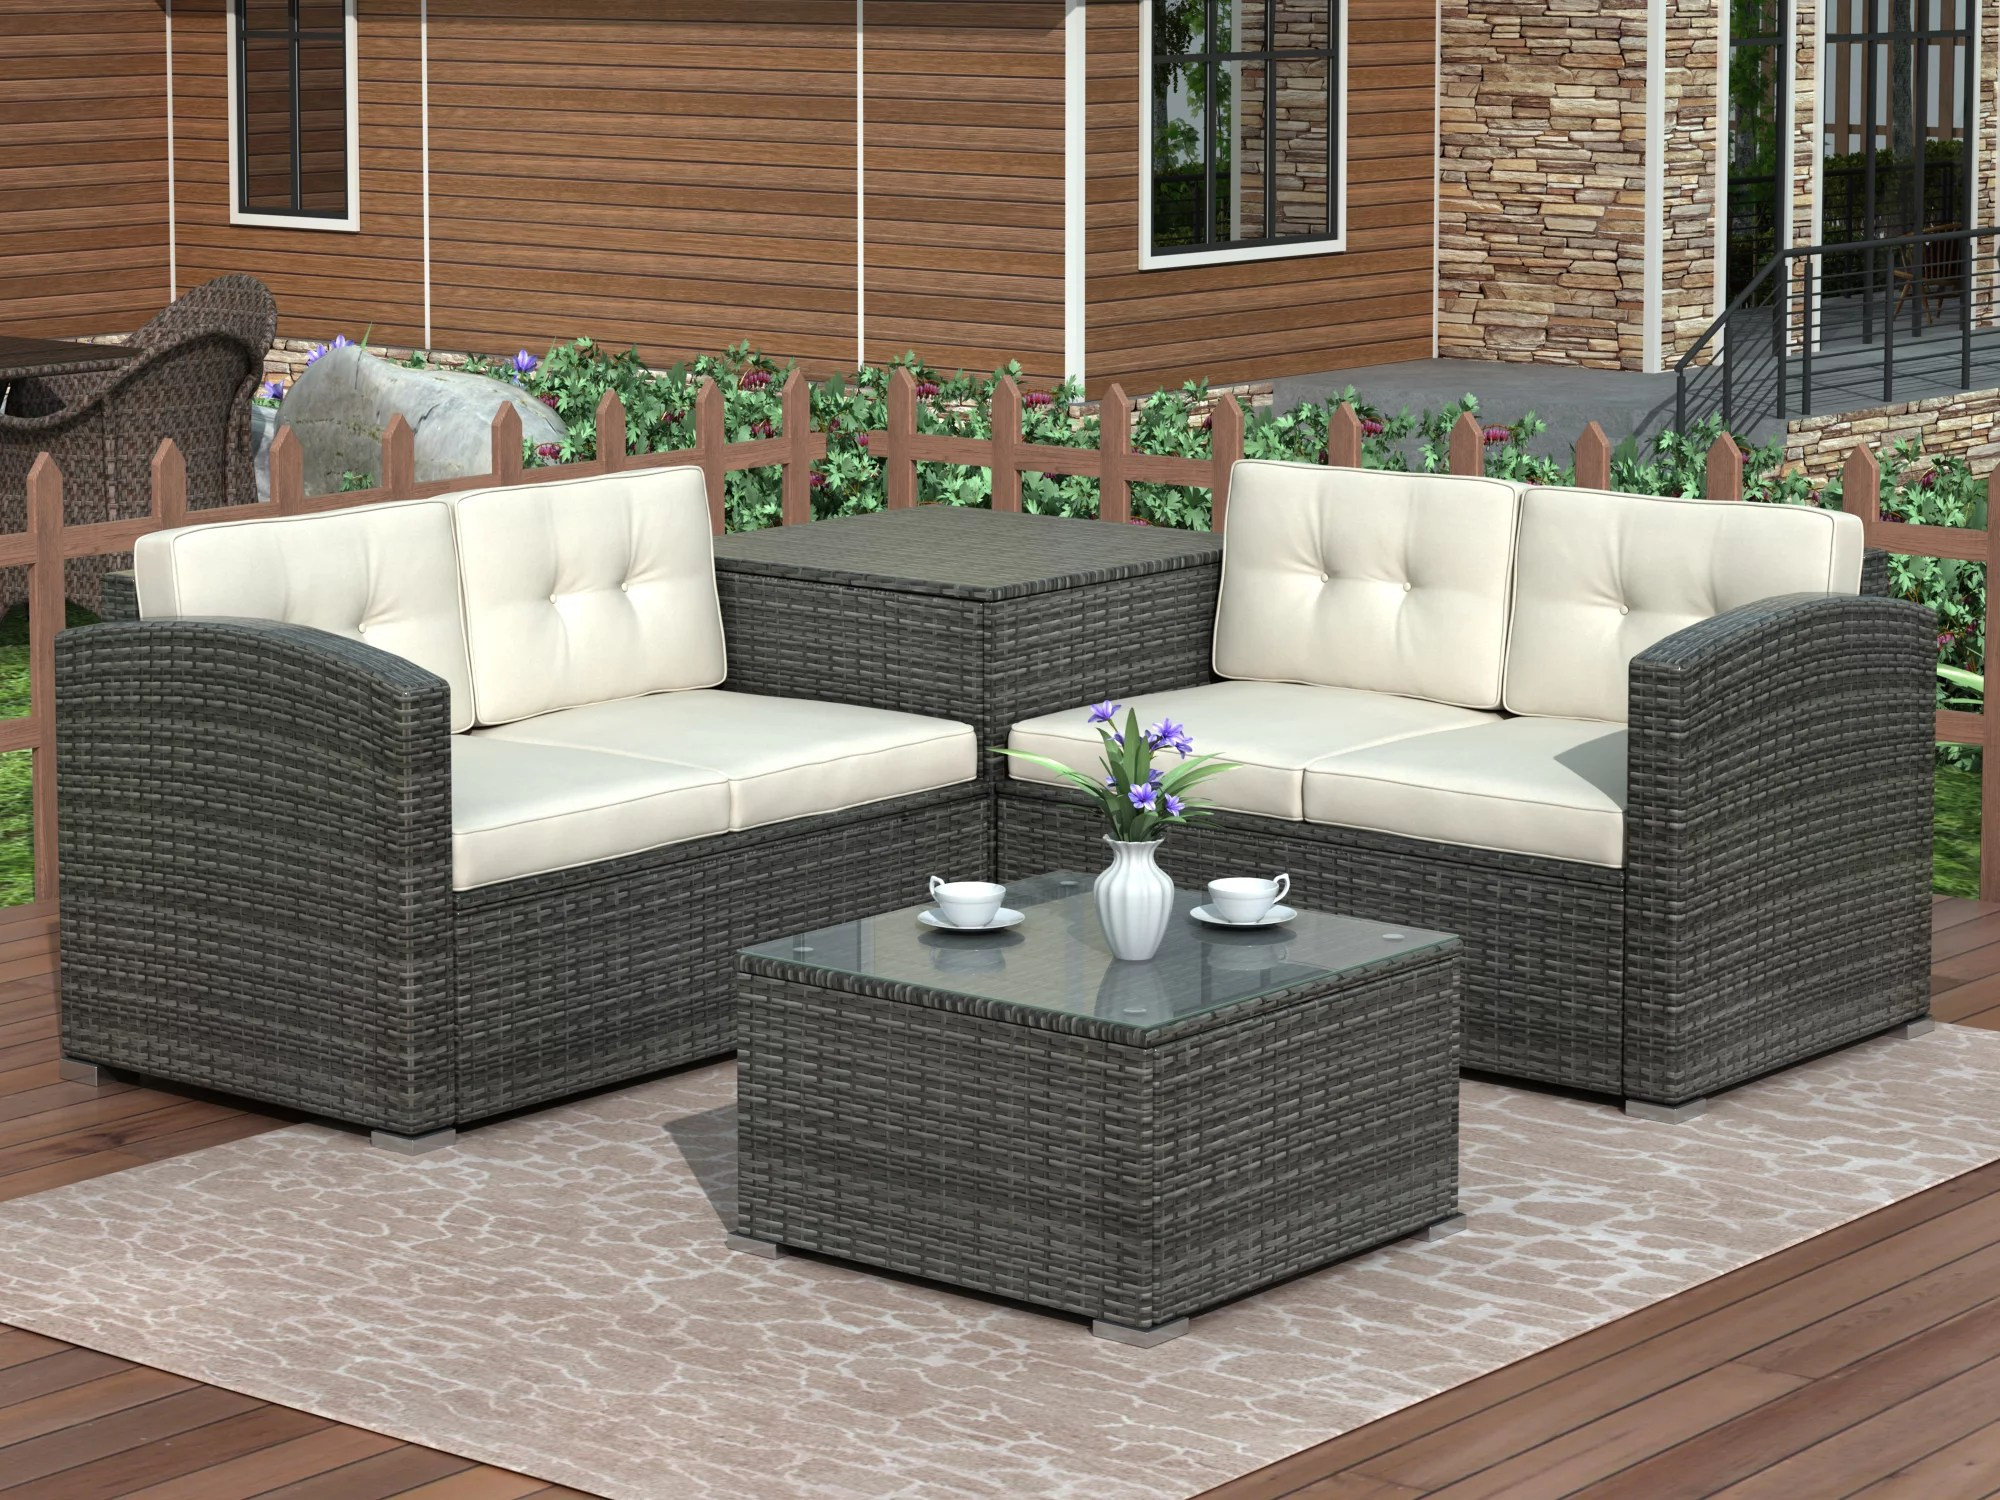 patio dining sets clearance 4 piece wicker bistro patio set with ottoman loveseat sofa glass coffee table pe rattan outdoor conversation set patio